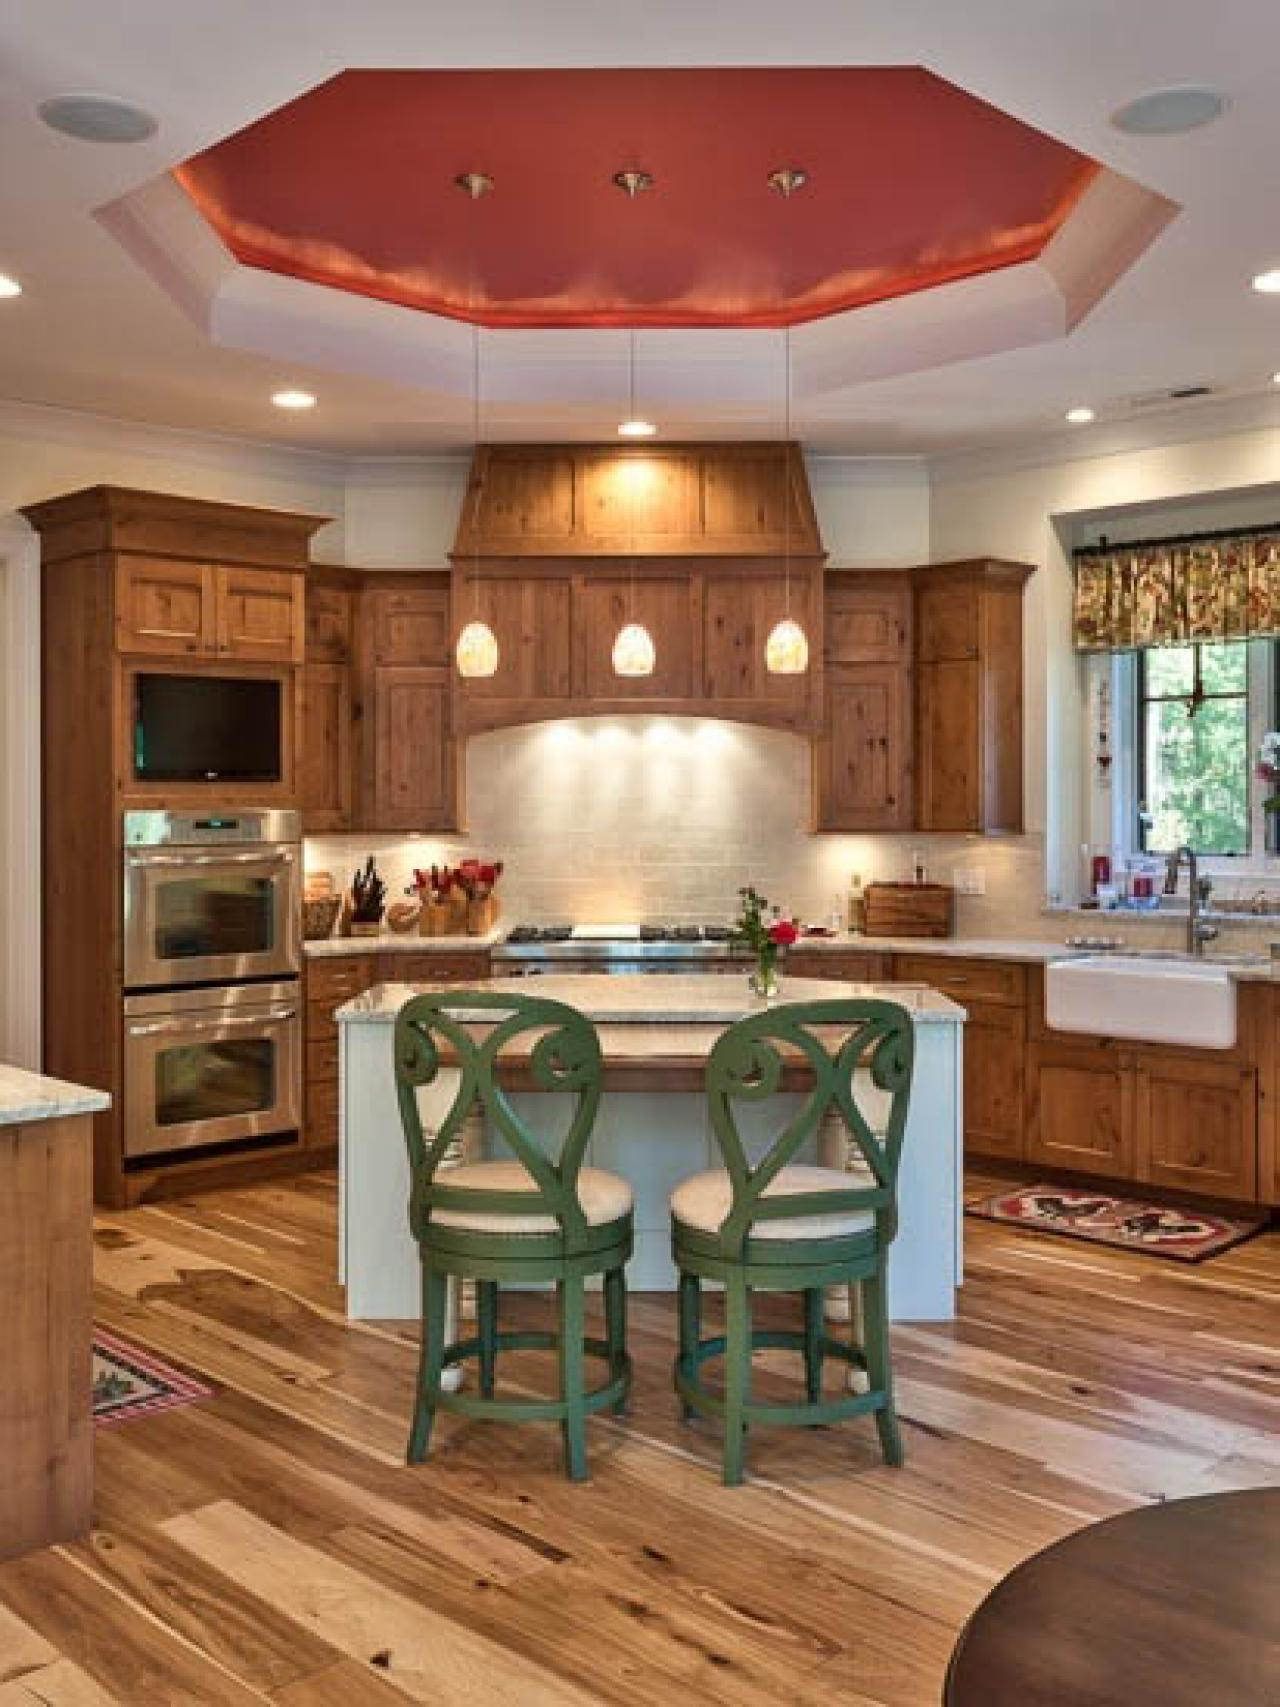 Painted kitchen chairs pictures ideas tips from hgtv for Red and brown kitchen ideas